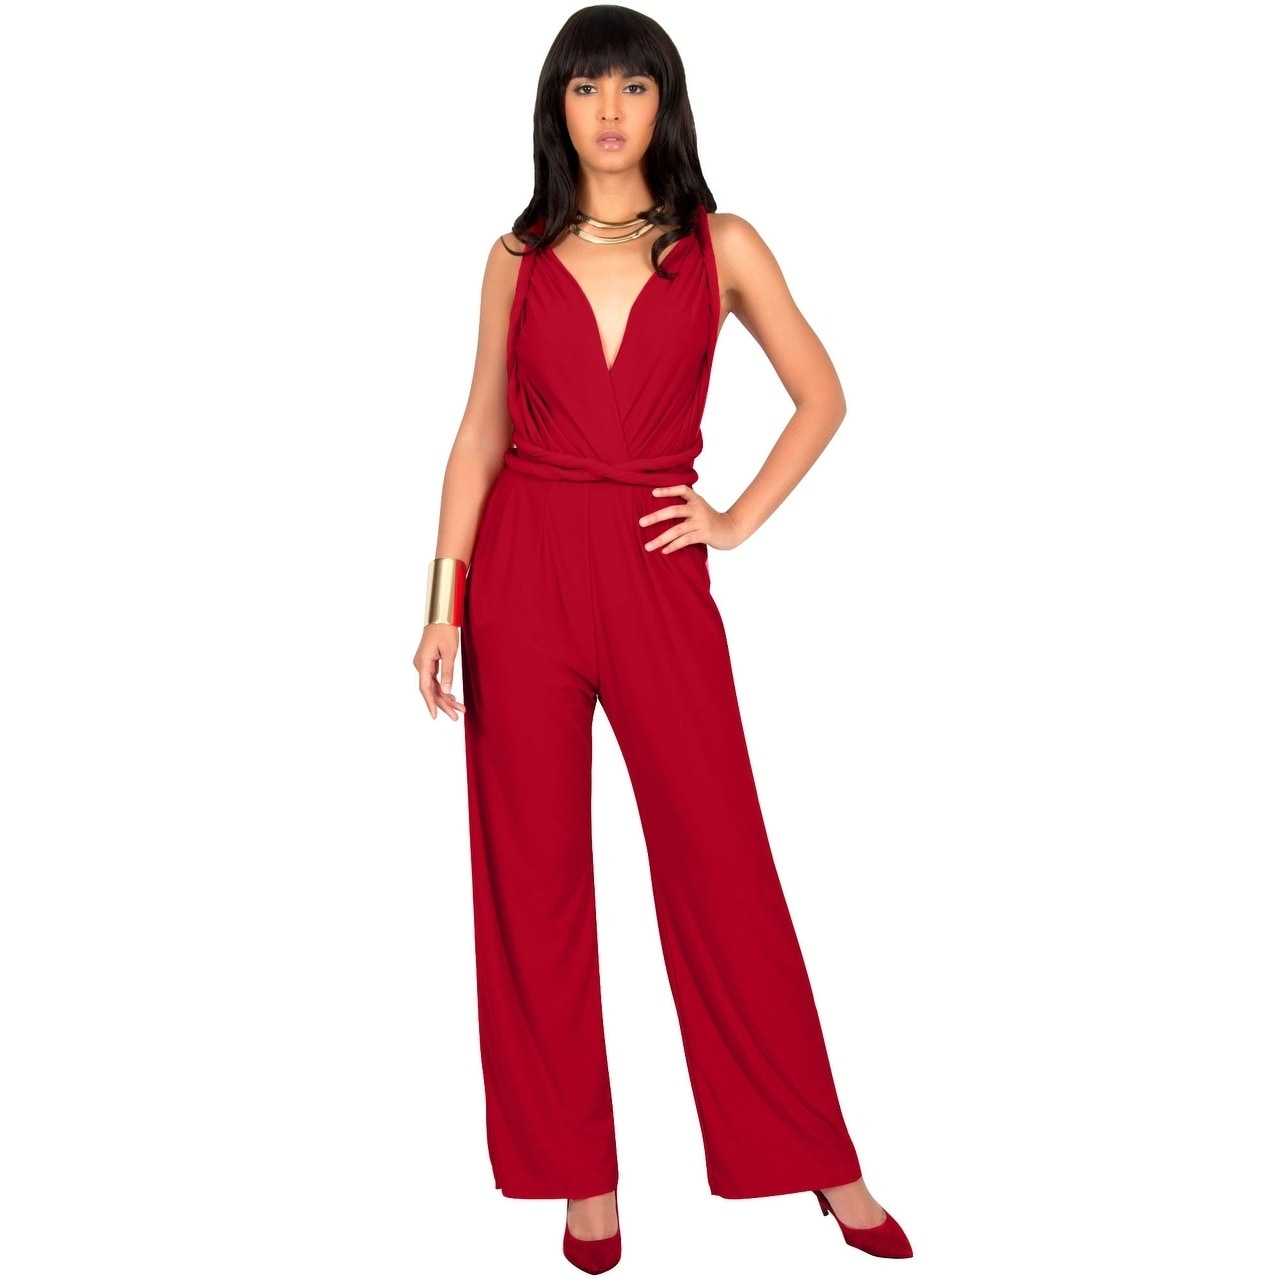 168fb41c964 Shop KOH KOH Womens Convertible Wrap Cocktail Party Jumpsuit Romper Pants -  Free Shipping Today - Overstock - 12736524